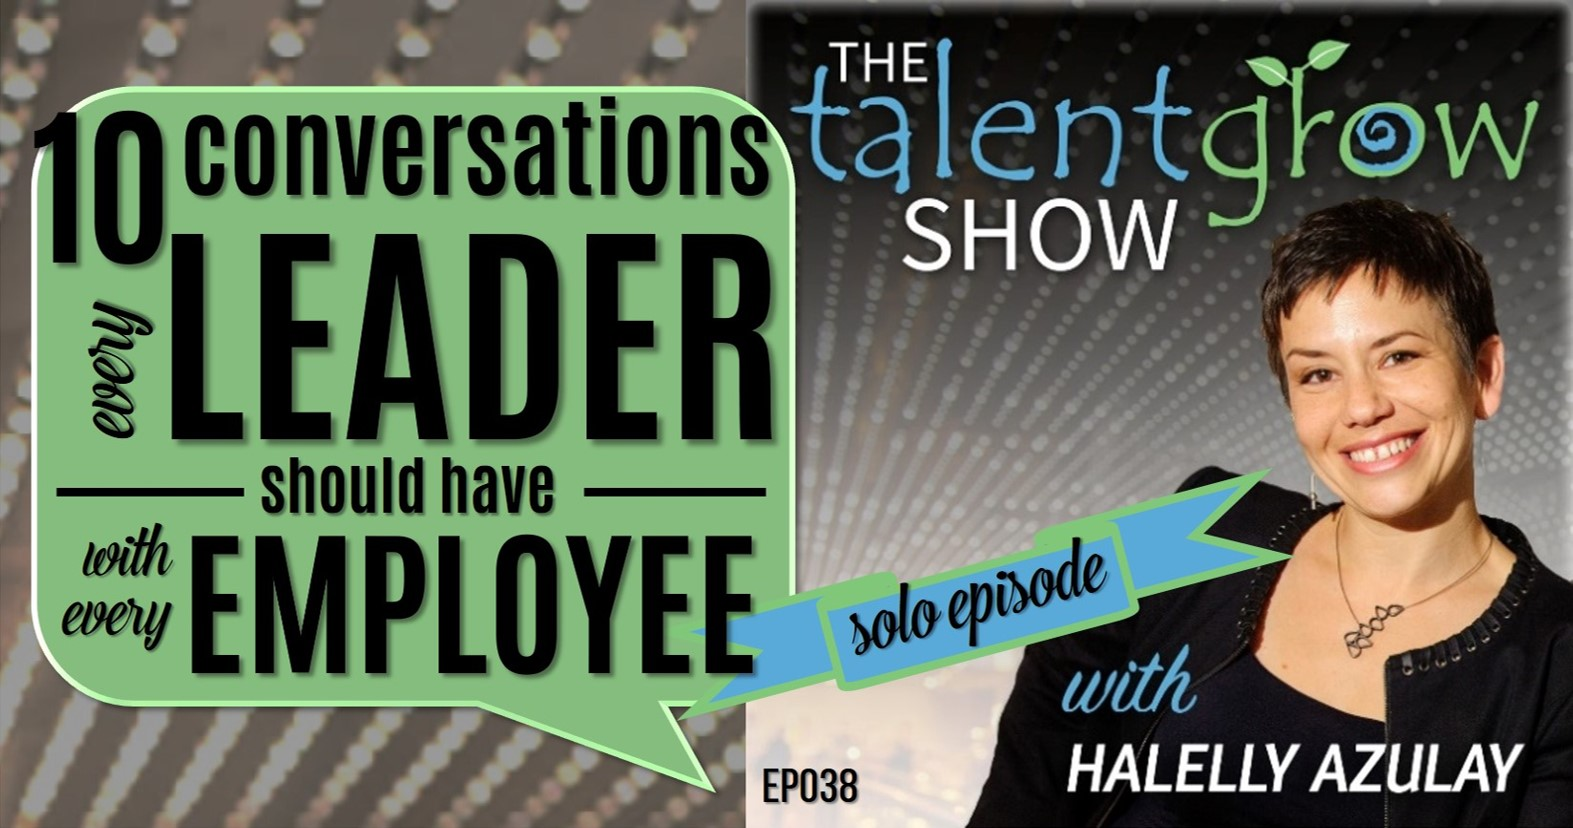 The TalentGrow Show episode 38 10 conversations every leader should have with every employee by Halelly Azulay